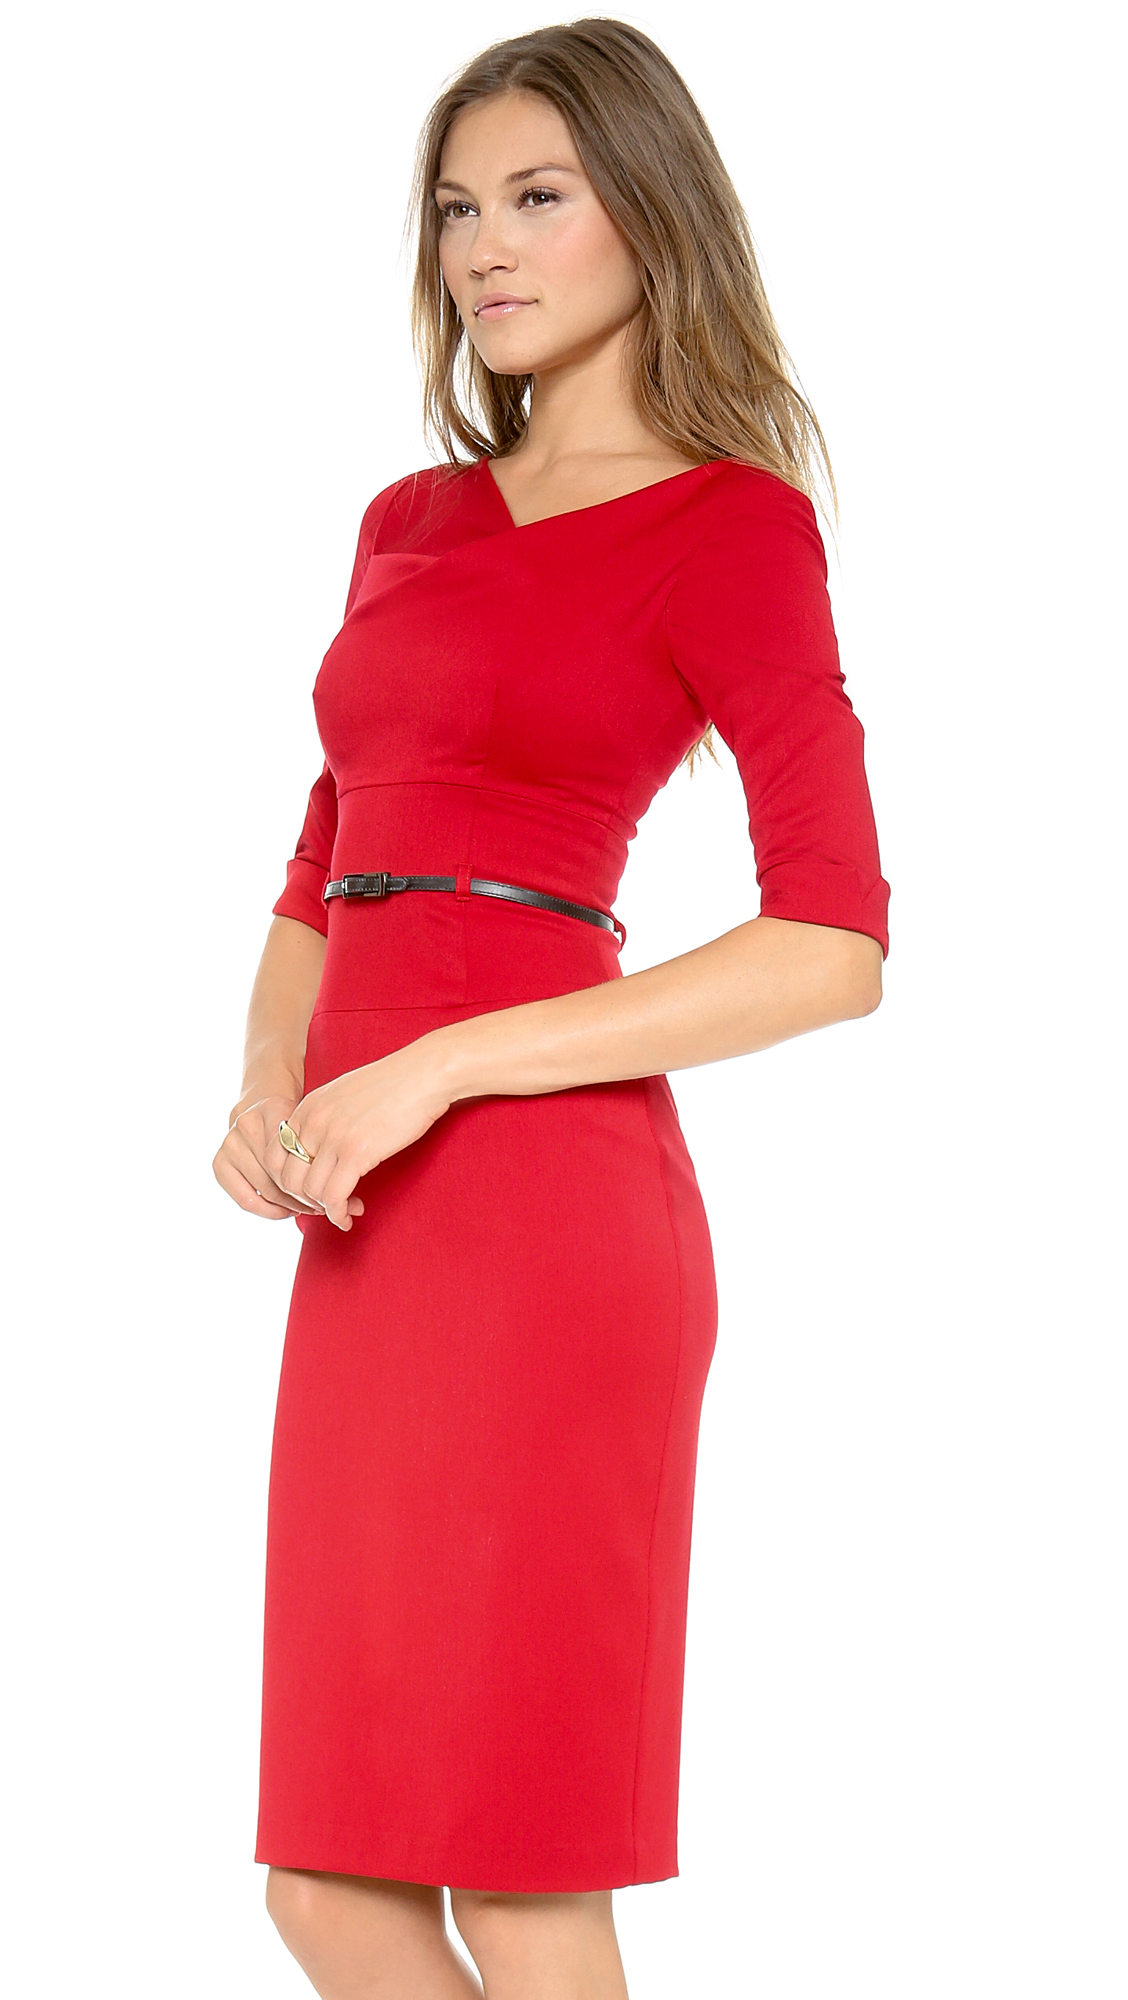 Black halo 3/4 Sleeve Jackie O Dress in Red | Lyst